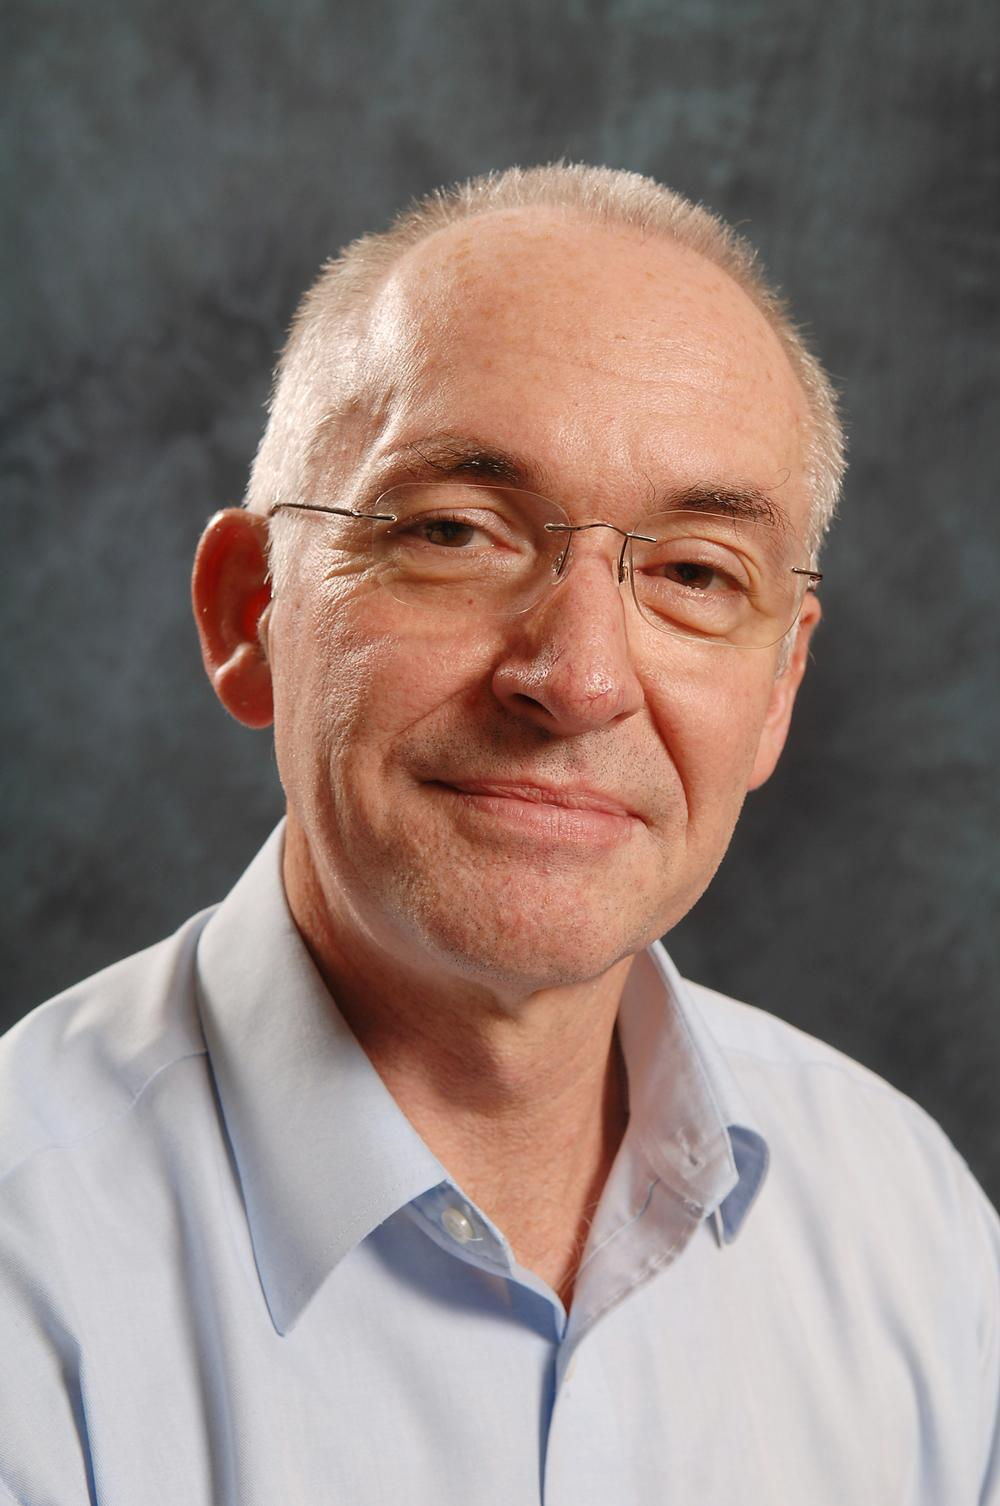 Professor Mike Kelly, director of the Centre of Public Health Excellence at NICE